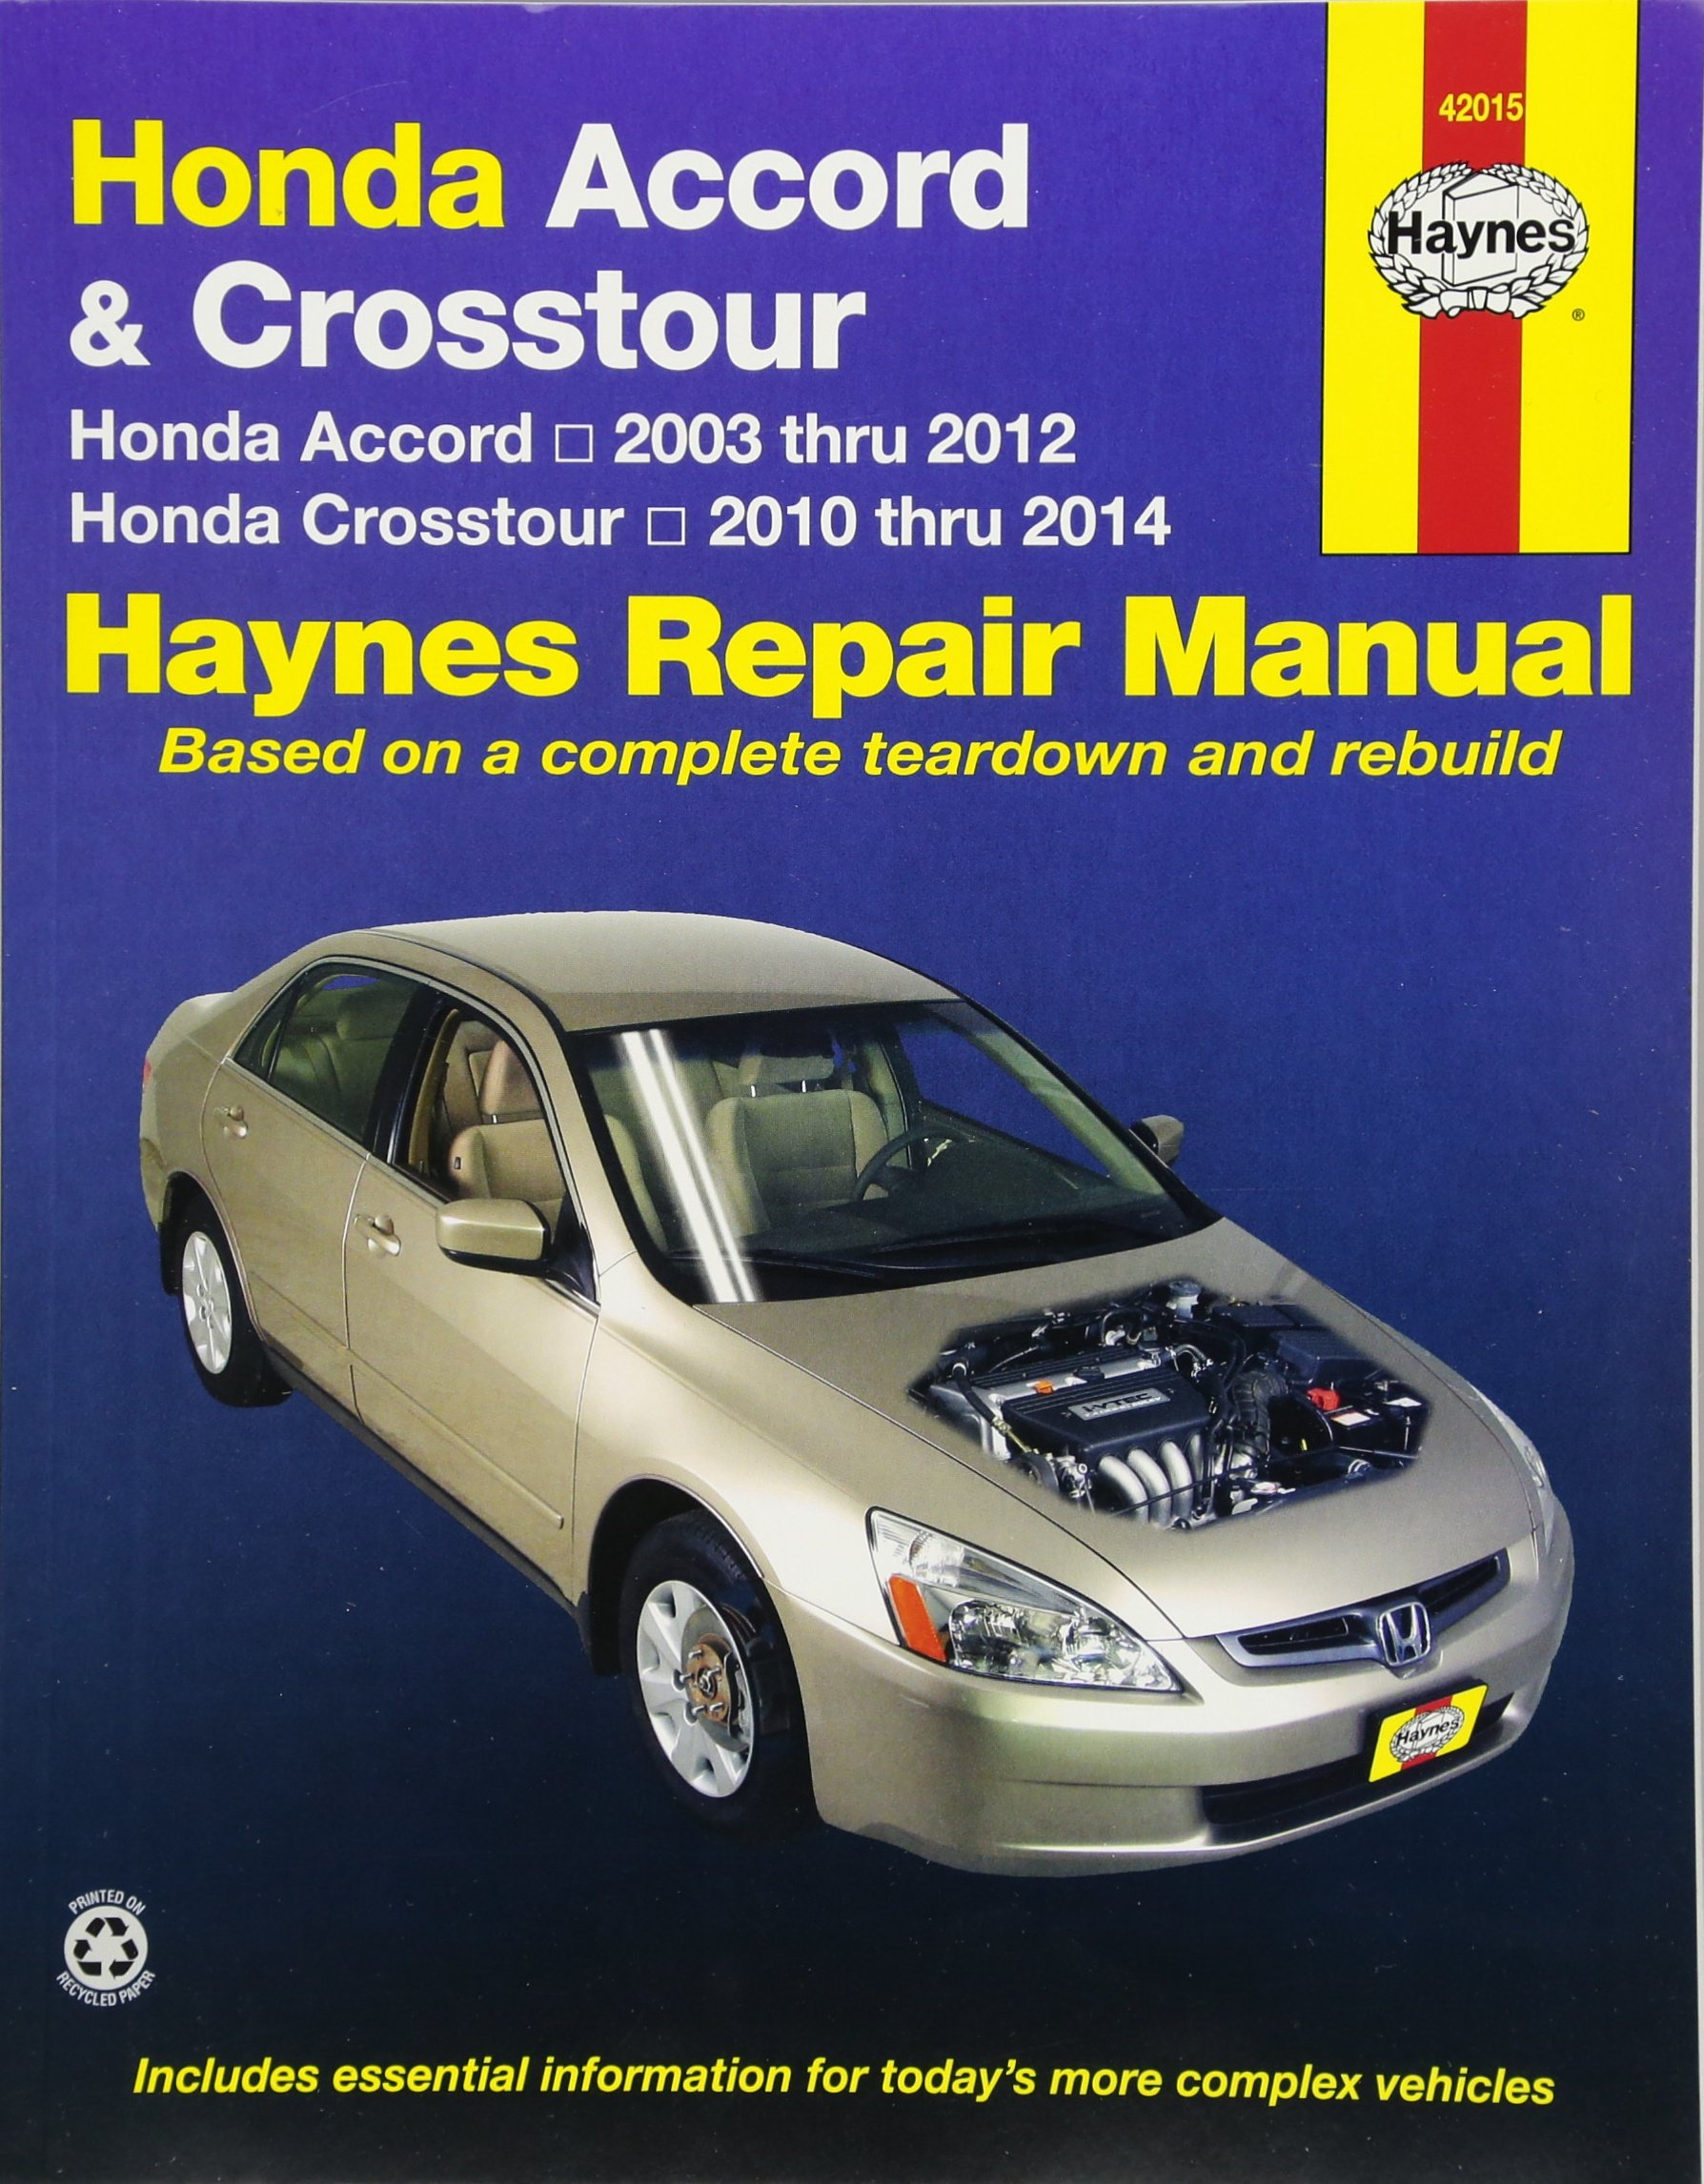 Honda Accord 2003-2007 Repair Manual (Haynes Repair Manual): Haynes:  9781563927409: Amazon.com: Books